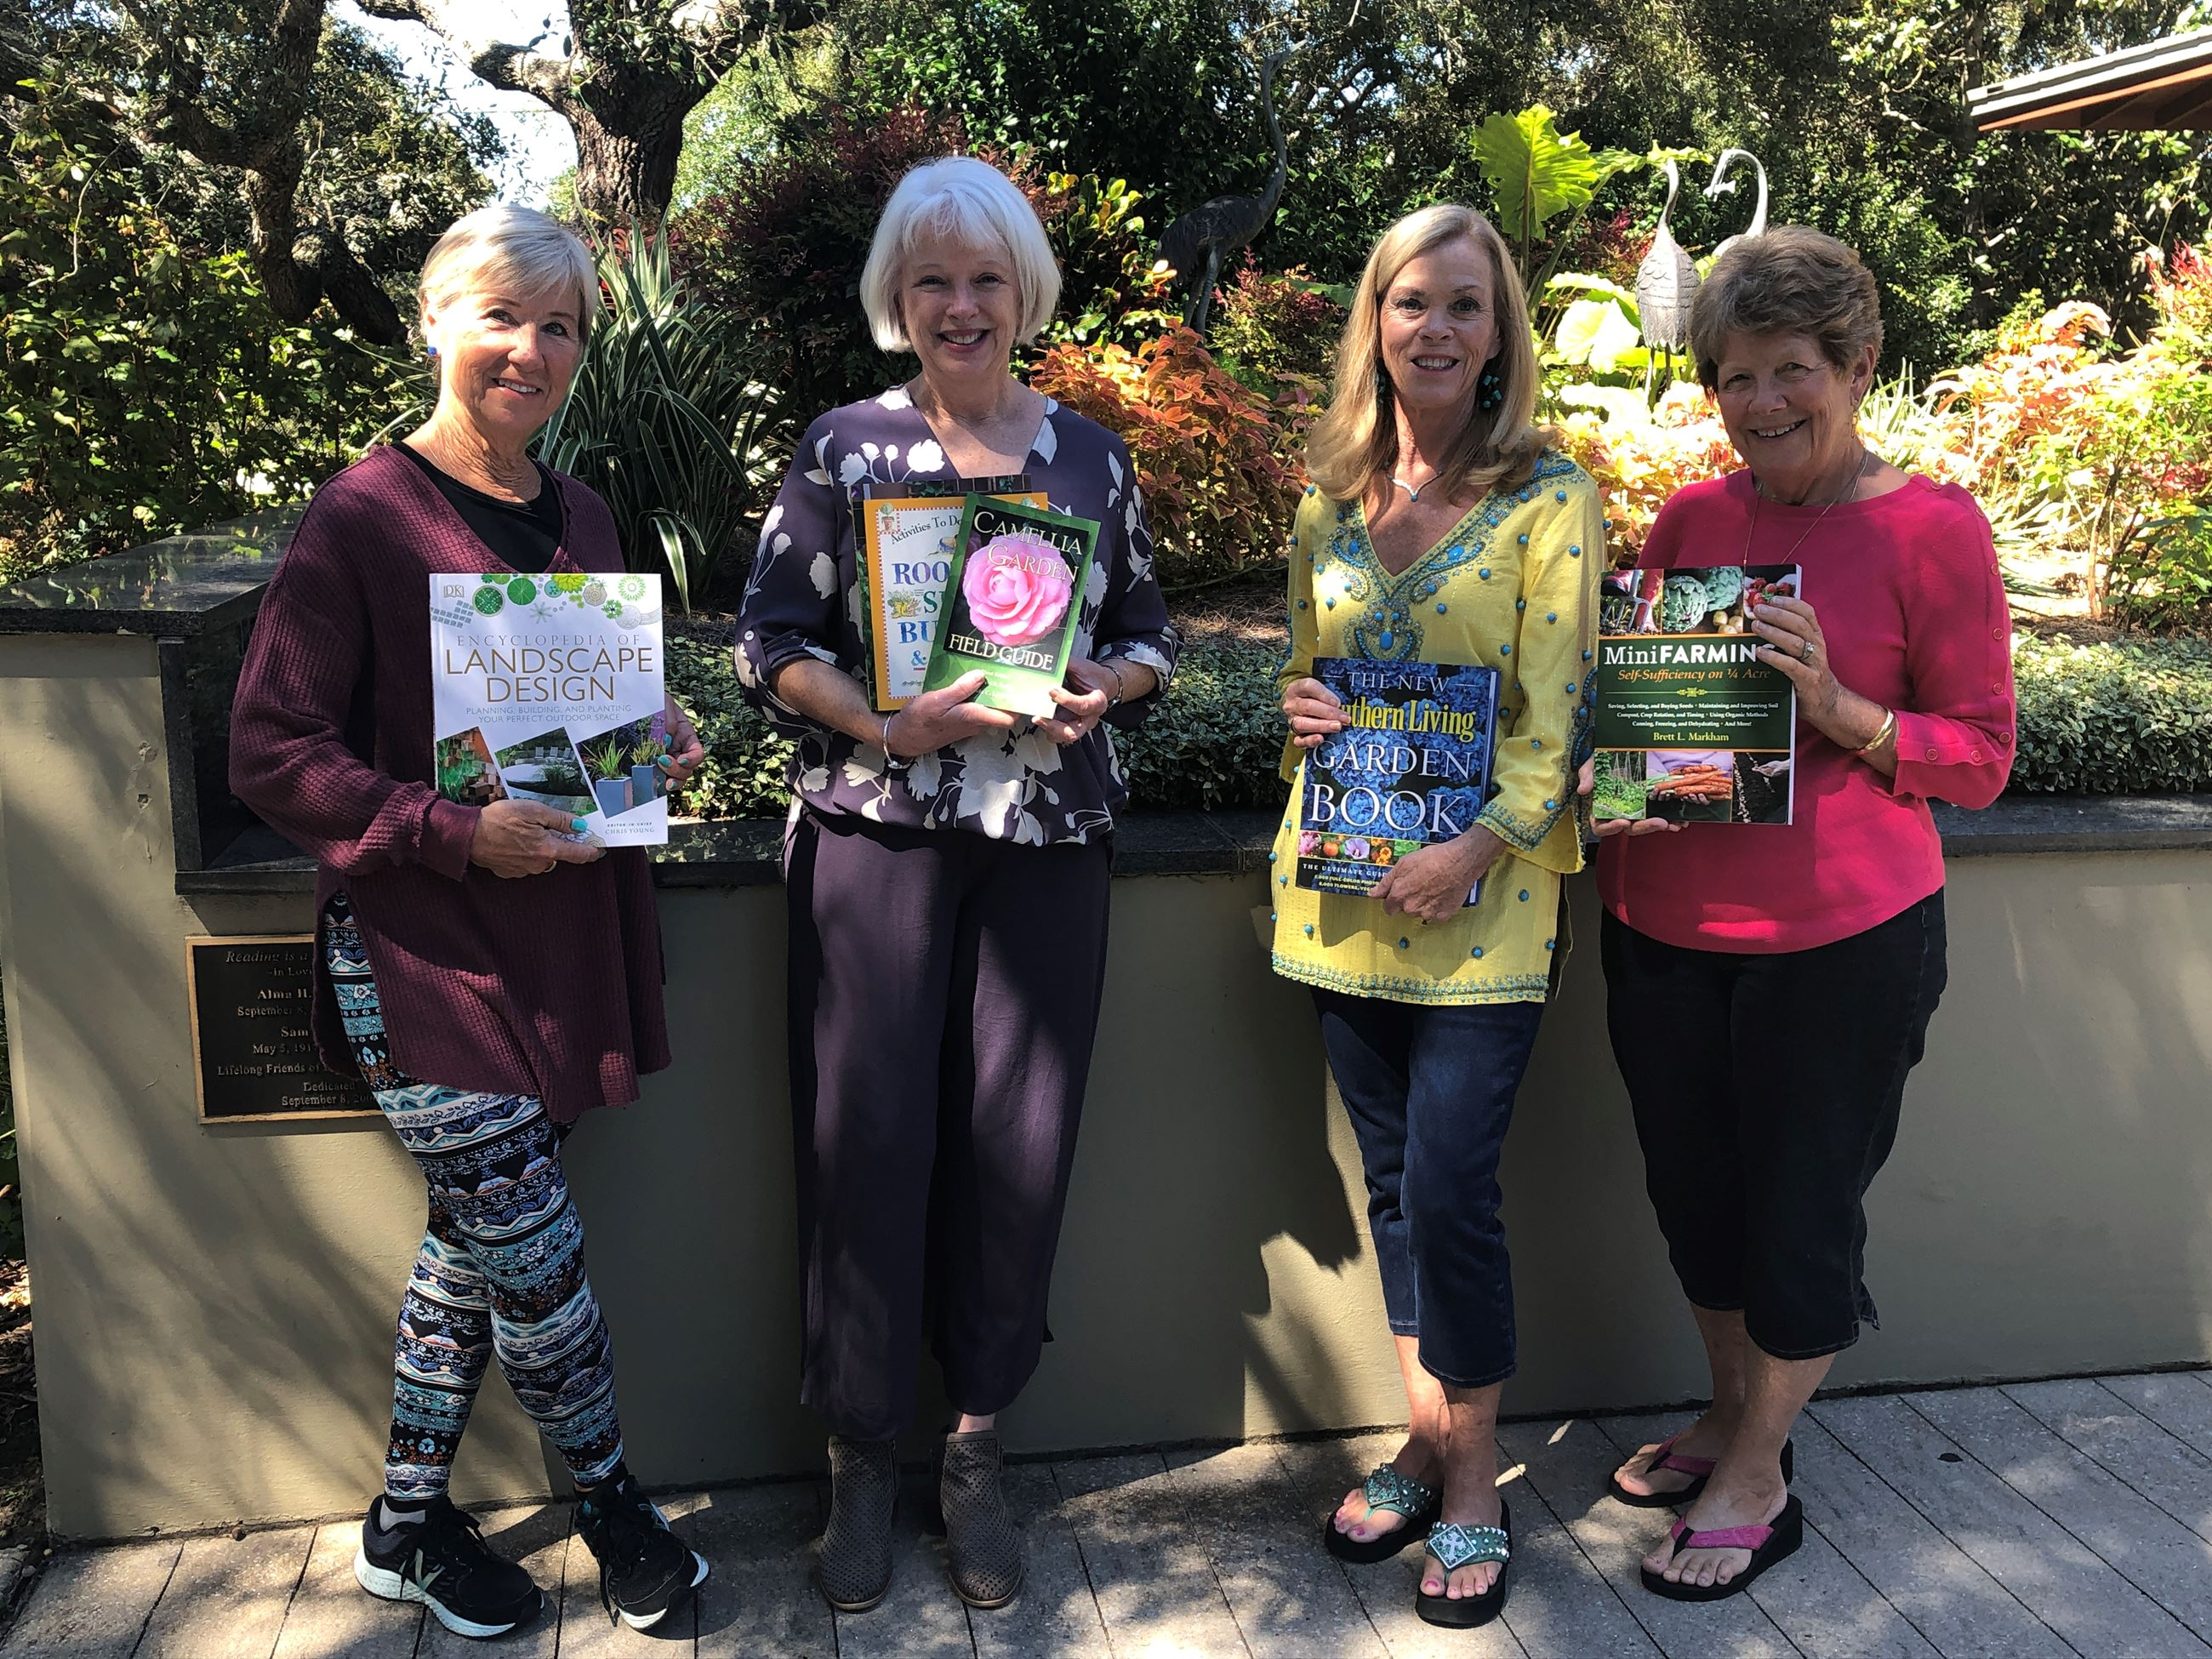 A picture of Destin Library Director Wen Livingston and members of the Destin Gardening Club